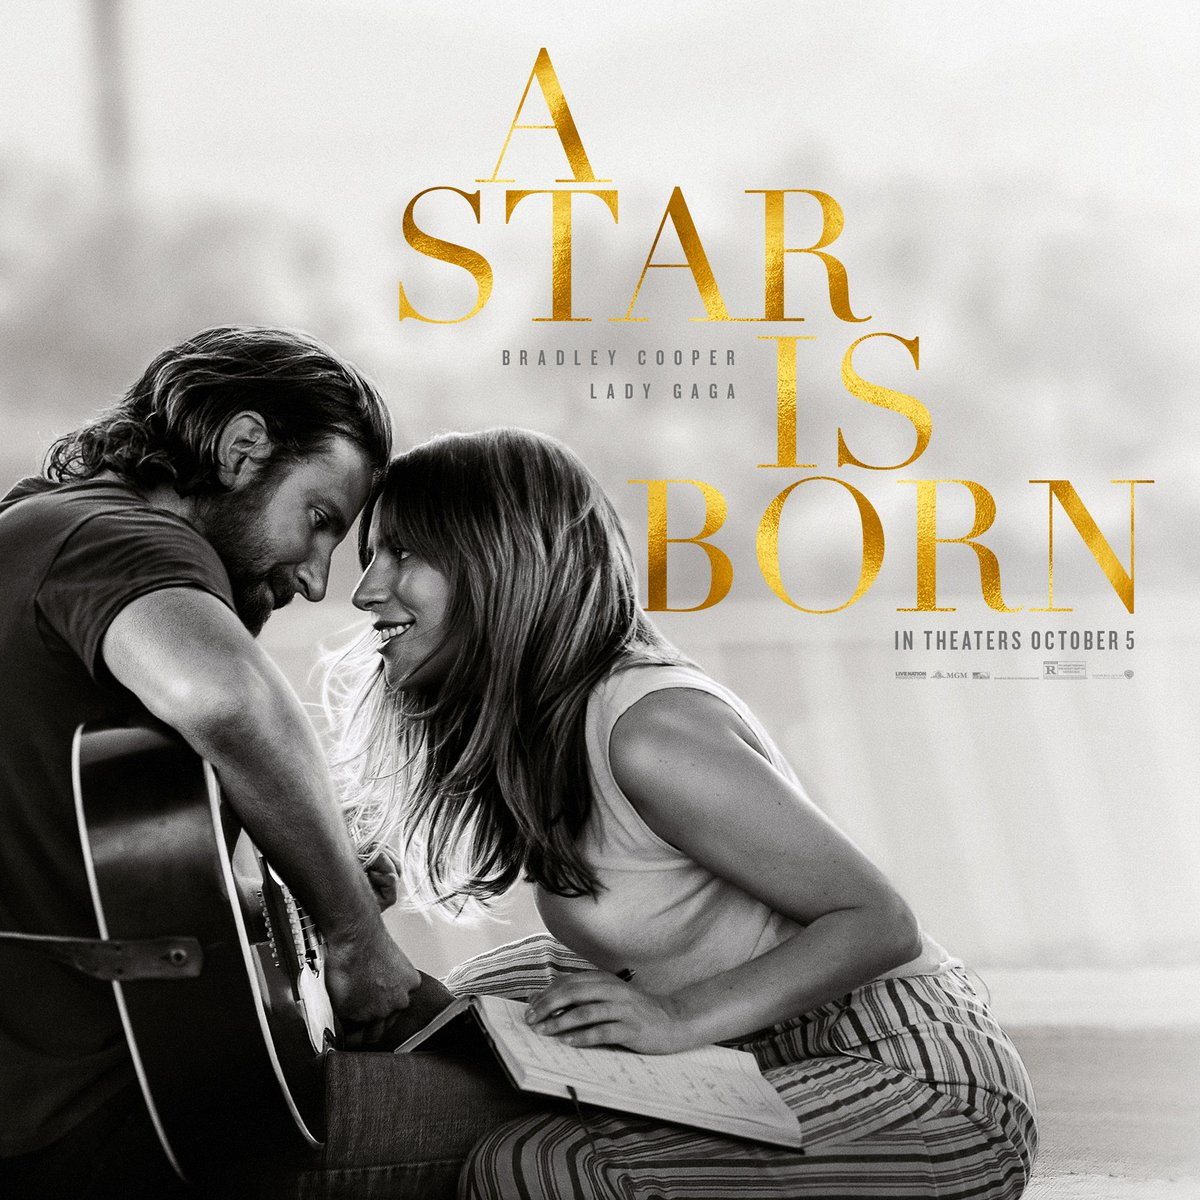 Lady Gaga, Bradley Cooper share romance in 'A Star is Born'